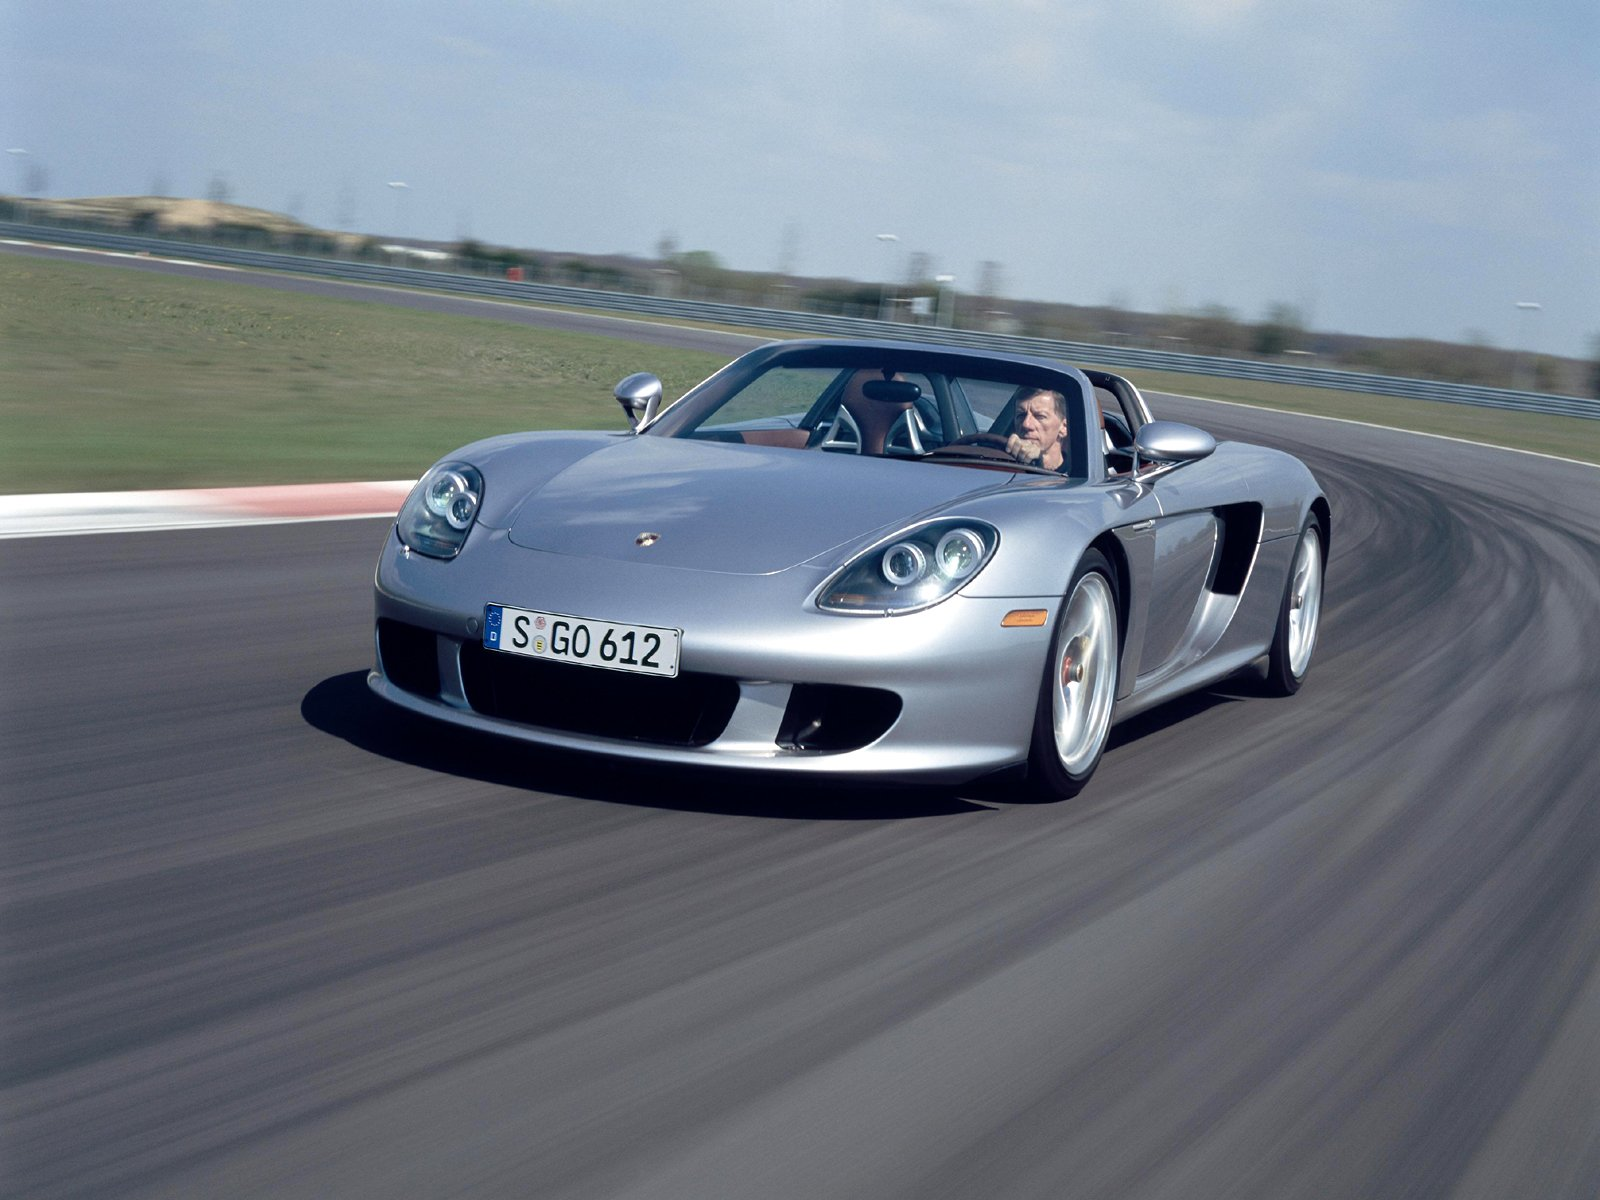 Cars Life   Cars Fashion Lifestyle Blog  Porsche 918 Spyder with